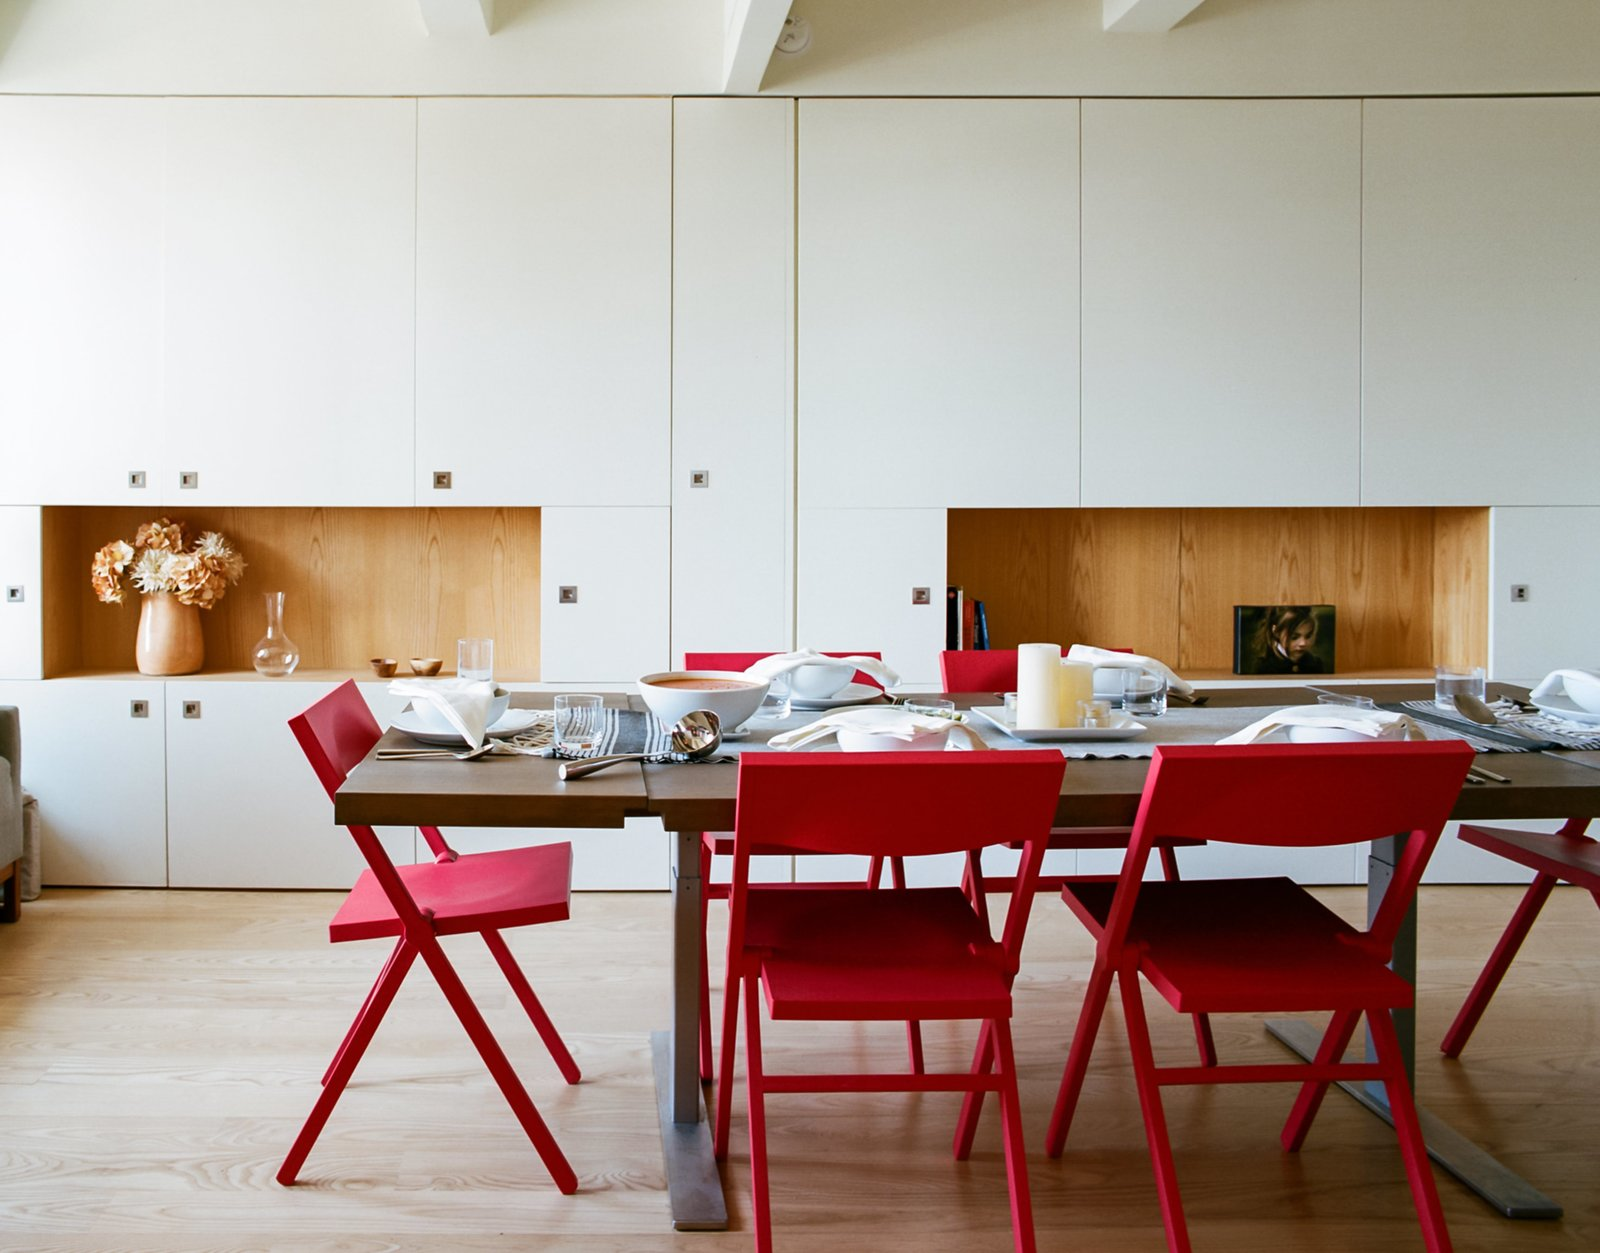 Dining Room, Chair, Table, Storage, Shelves, and Light Hardwood Floor The red Piana folding chairs are by David Chipperfield for Alessi; Garneau custom-designed the millwork tabletop and stainless-steel legs.  Photo 6 of 9 in A Pivoting Wall Makes This Tiny Studio a Fit For Any Occasion